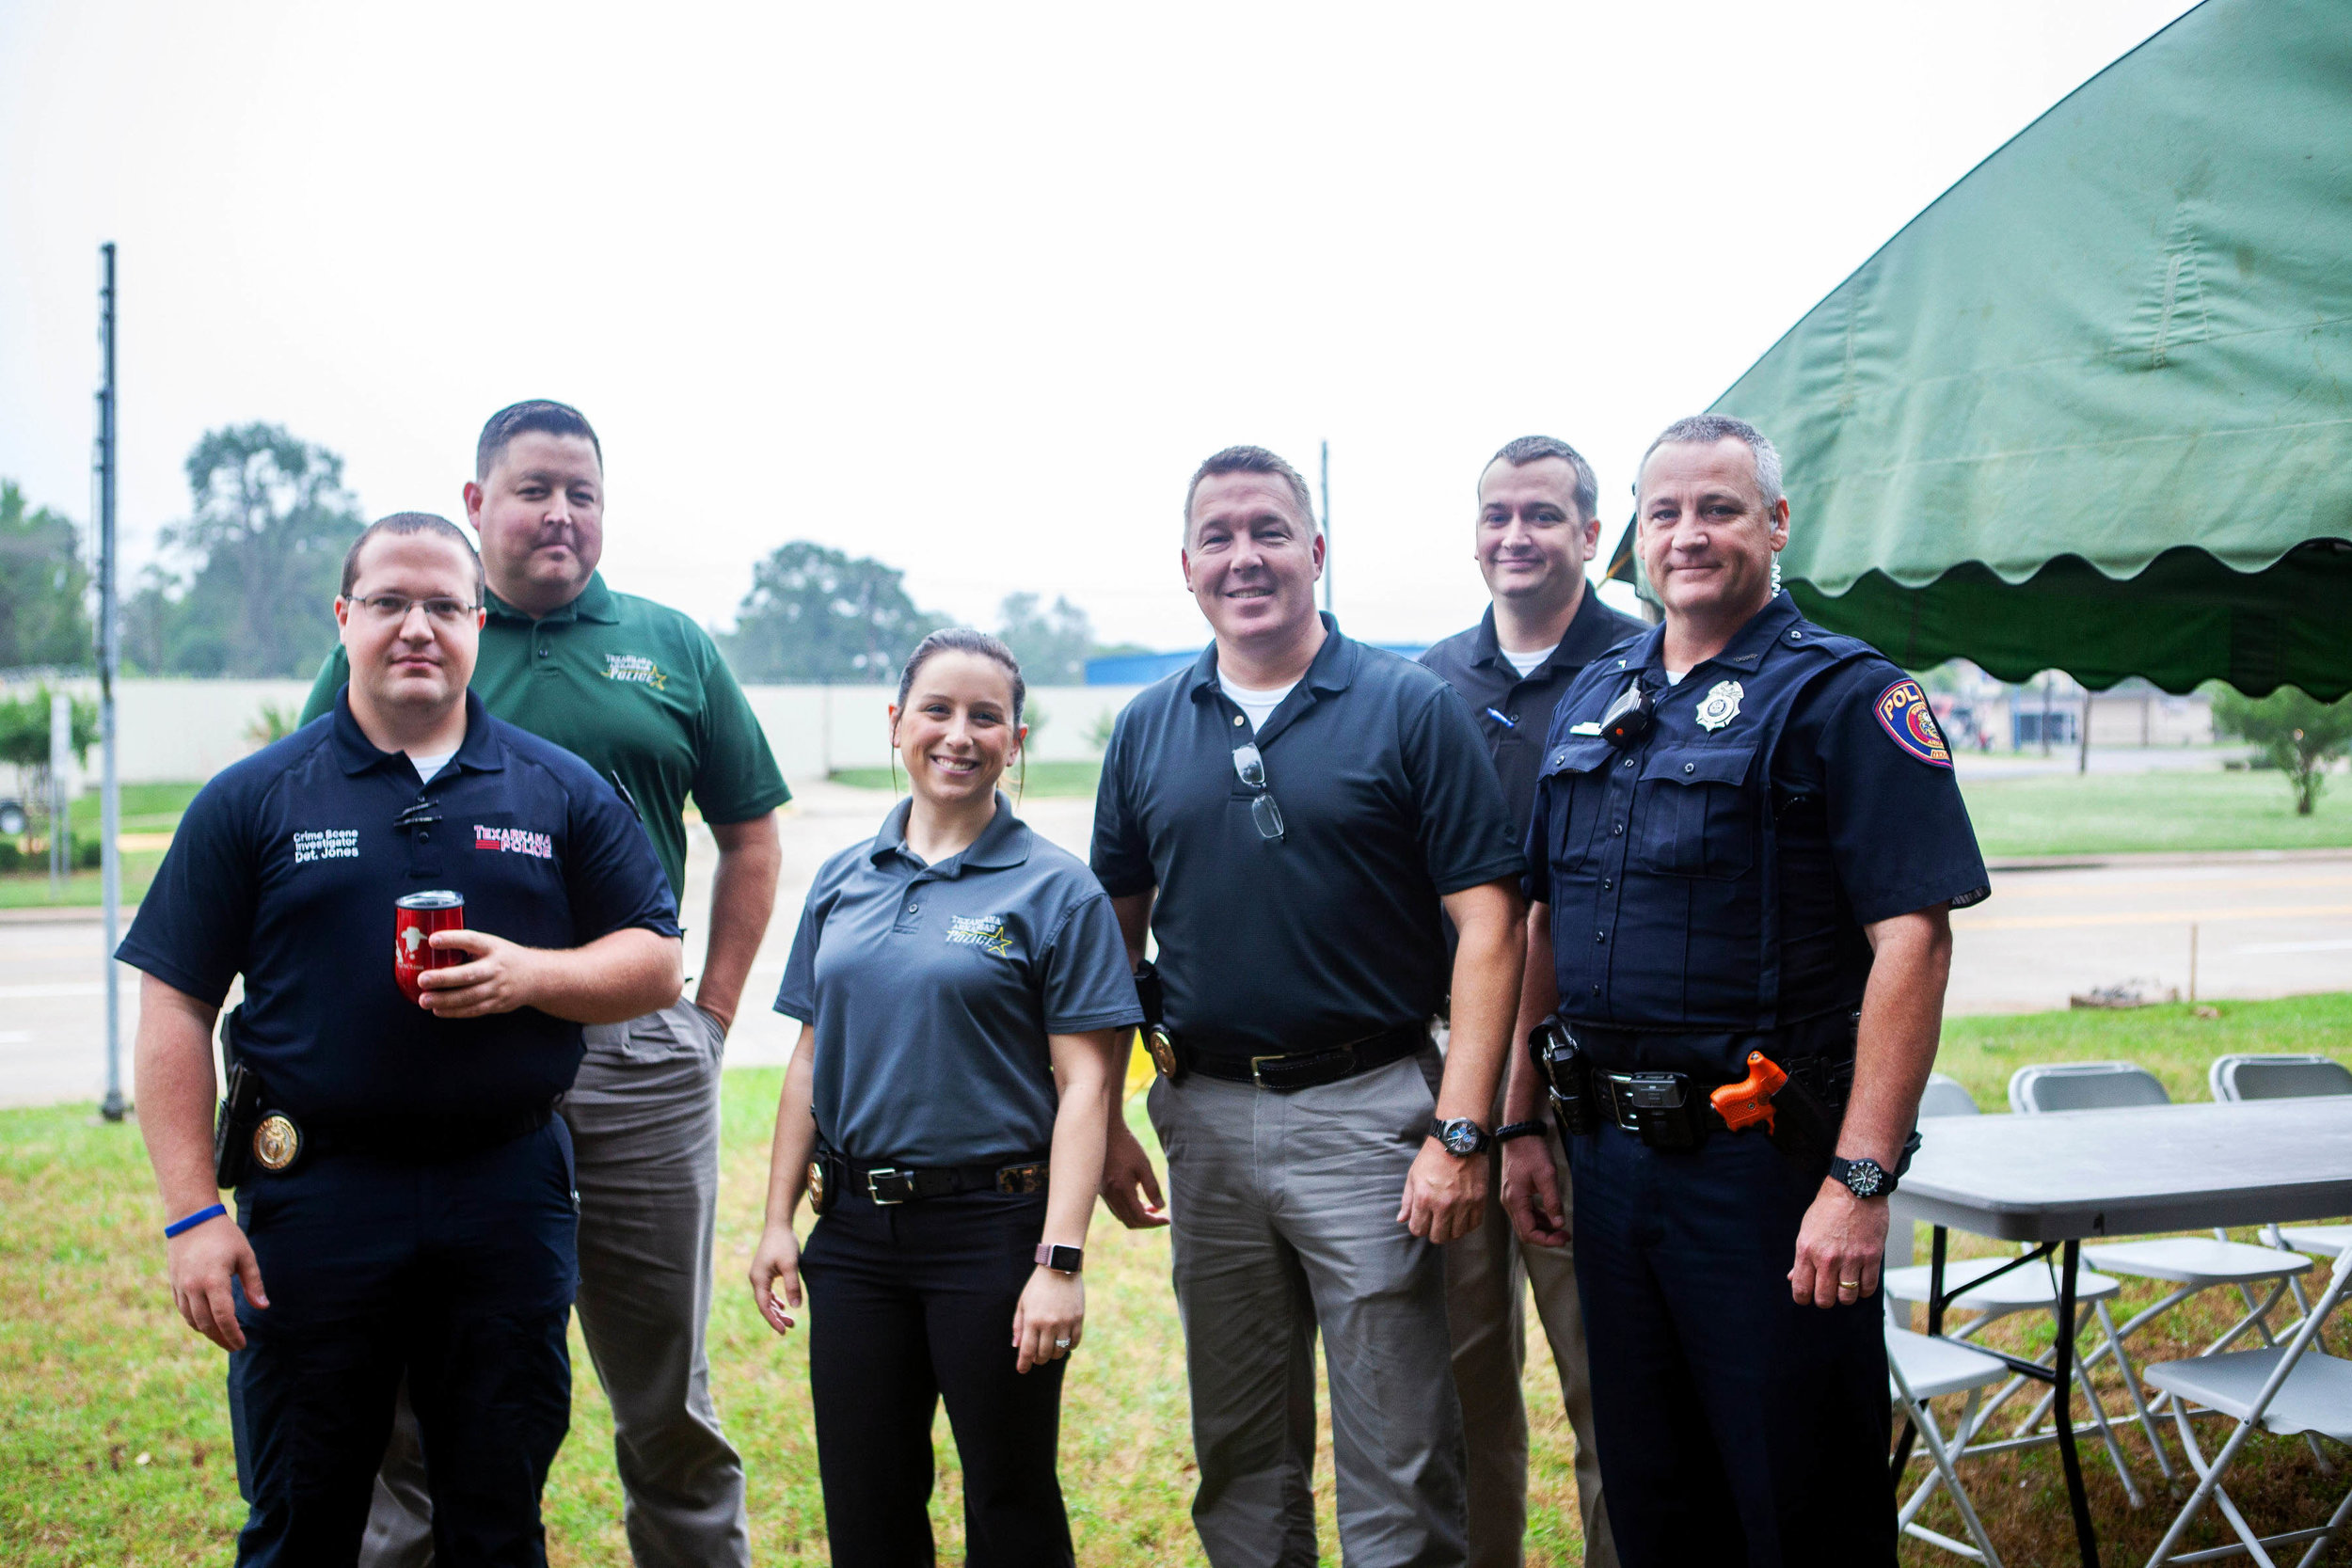 Detective Josh Jones, Detective David Parker, Detective Kayla Cigainero, Detective Brett Gatlin, Detective Brian Tribble and Officer Alan Johnson